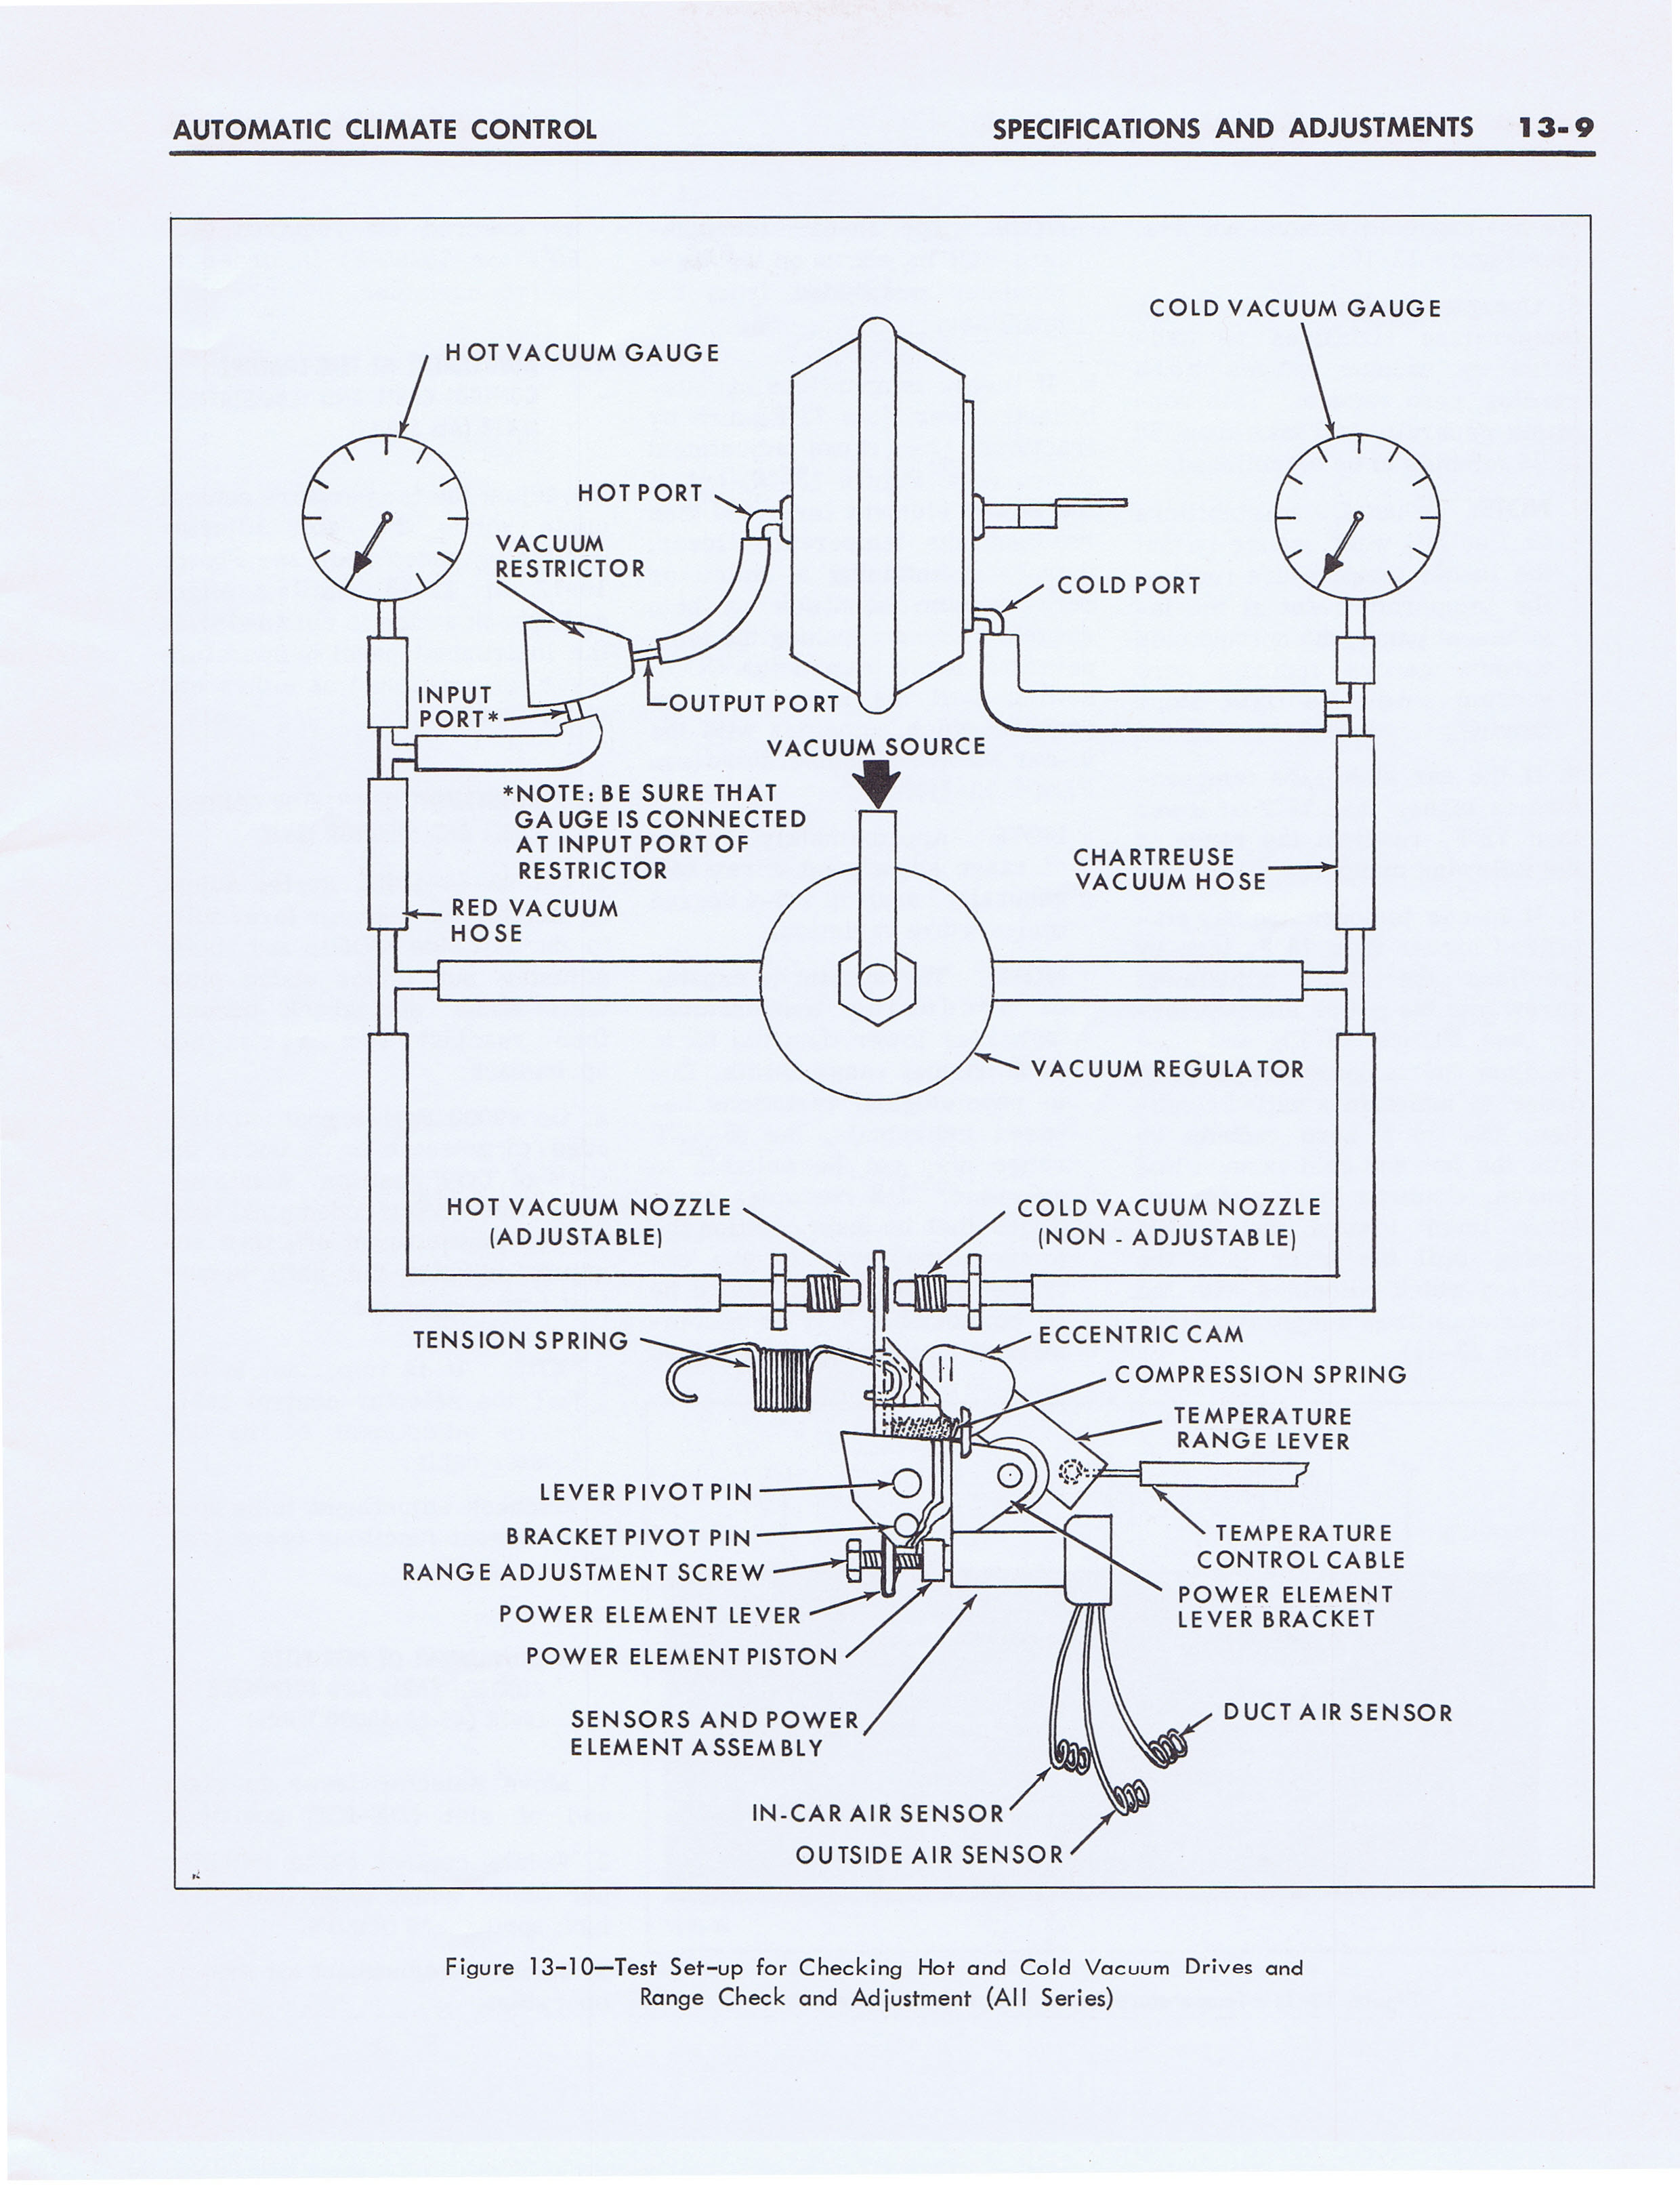 1967 Buick Automatic Climate Control (Second Type) page 11